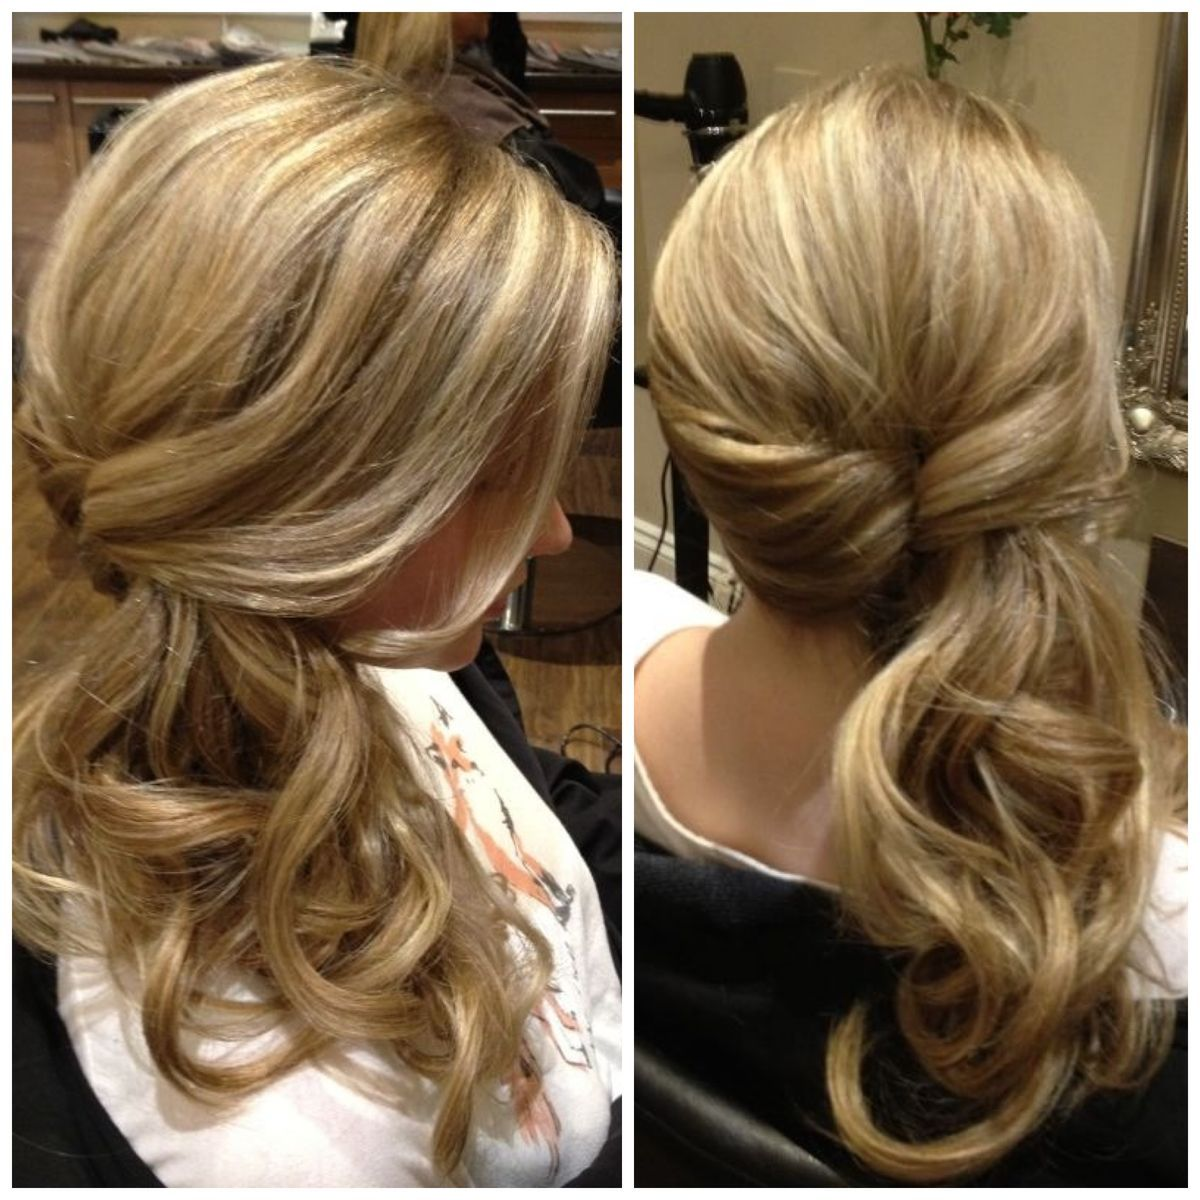 Pin By Kerry Dow On Great Hair Tricks And Tips: Pin By Teresa Latta-Graves On Hair In 2018